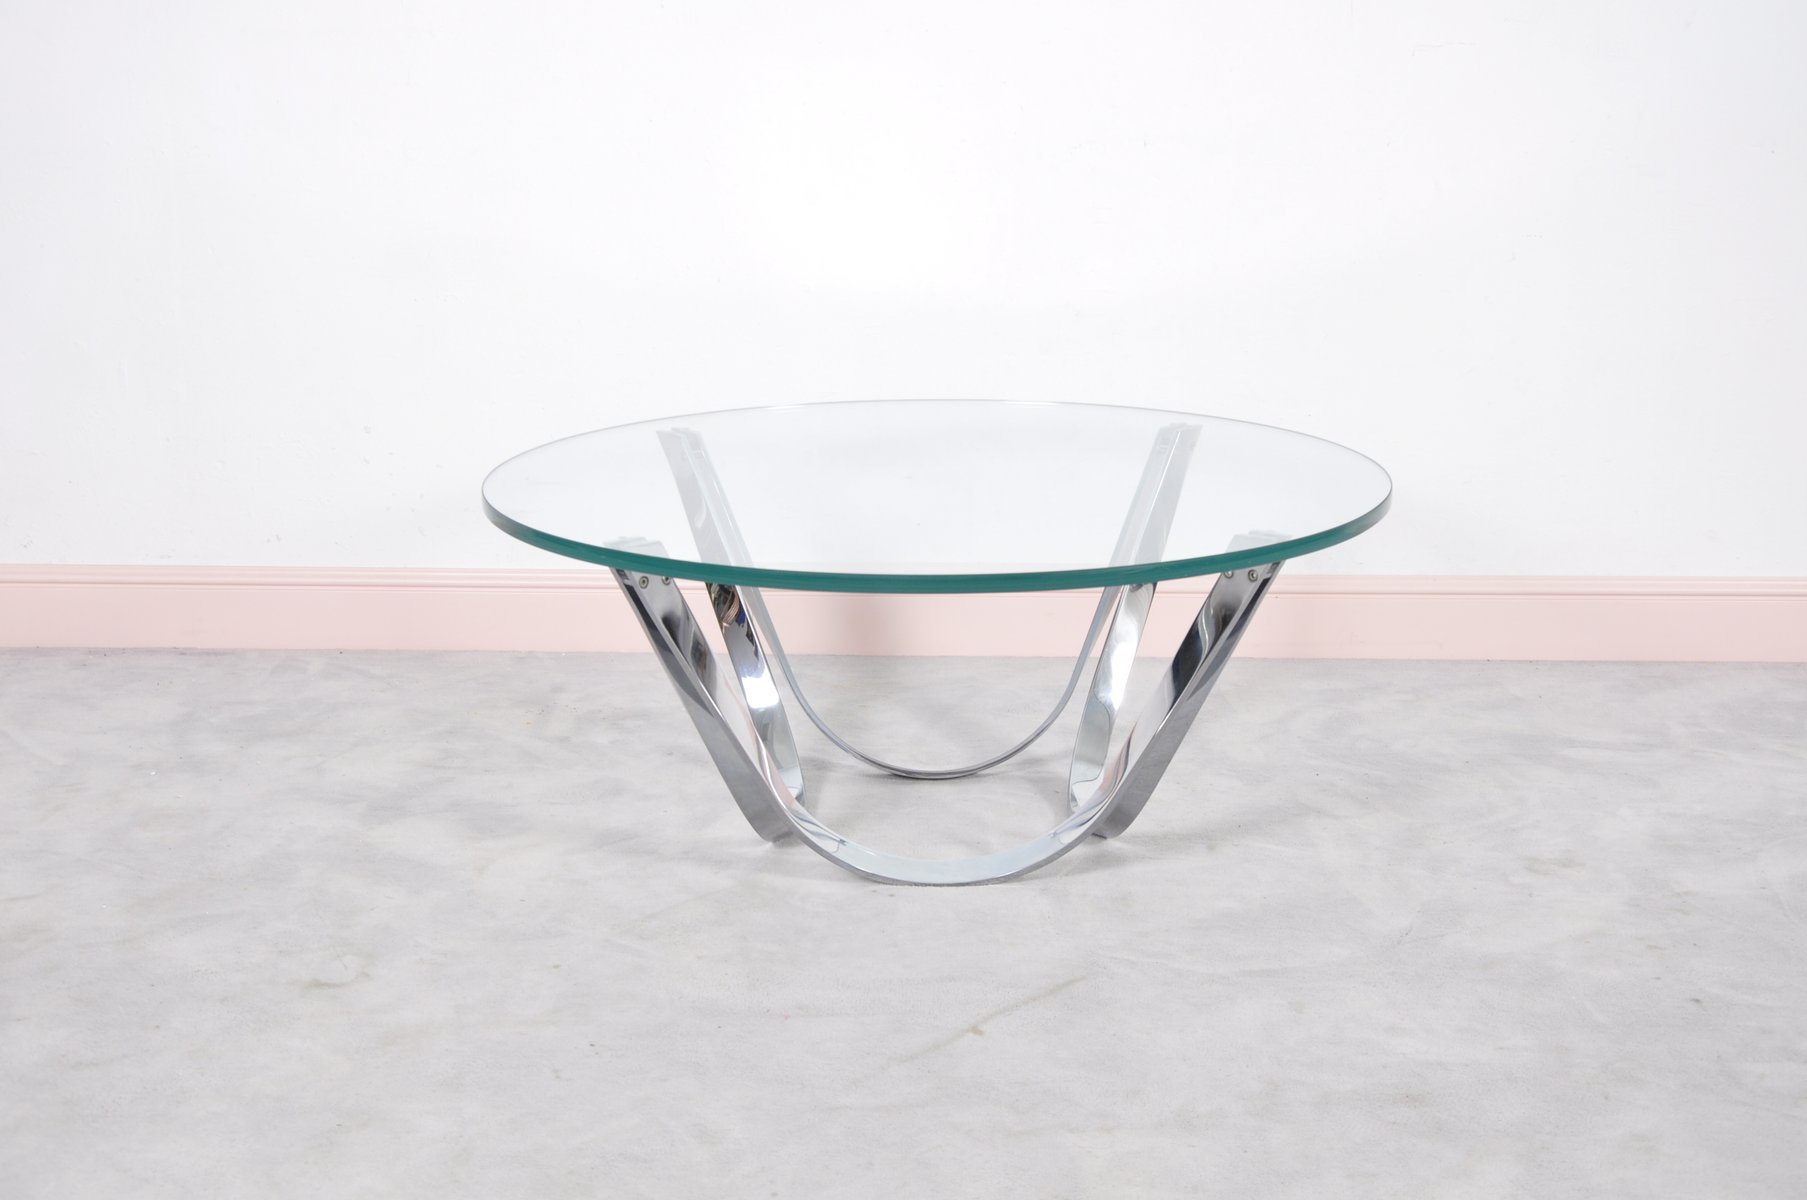 Round Glass Coffee Table By Roger Sprunger For Dunbar 1970s